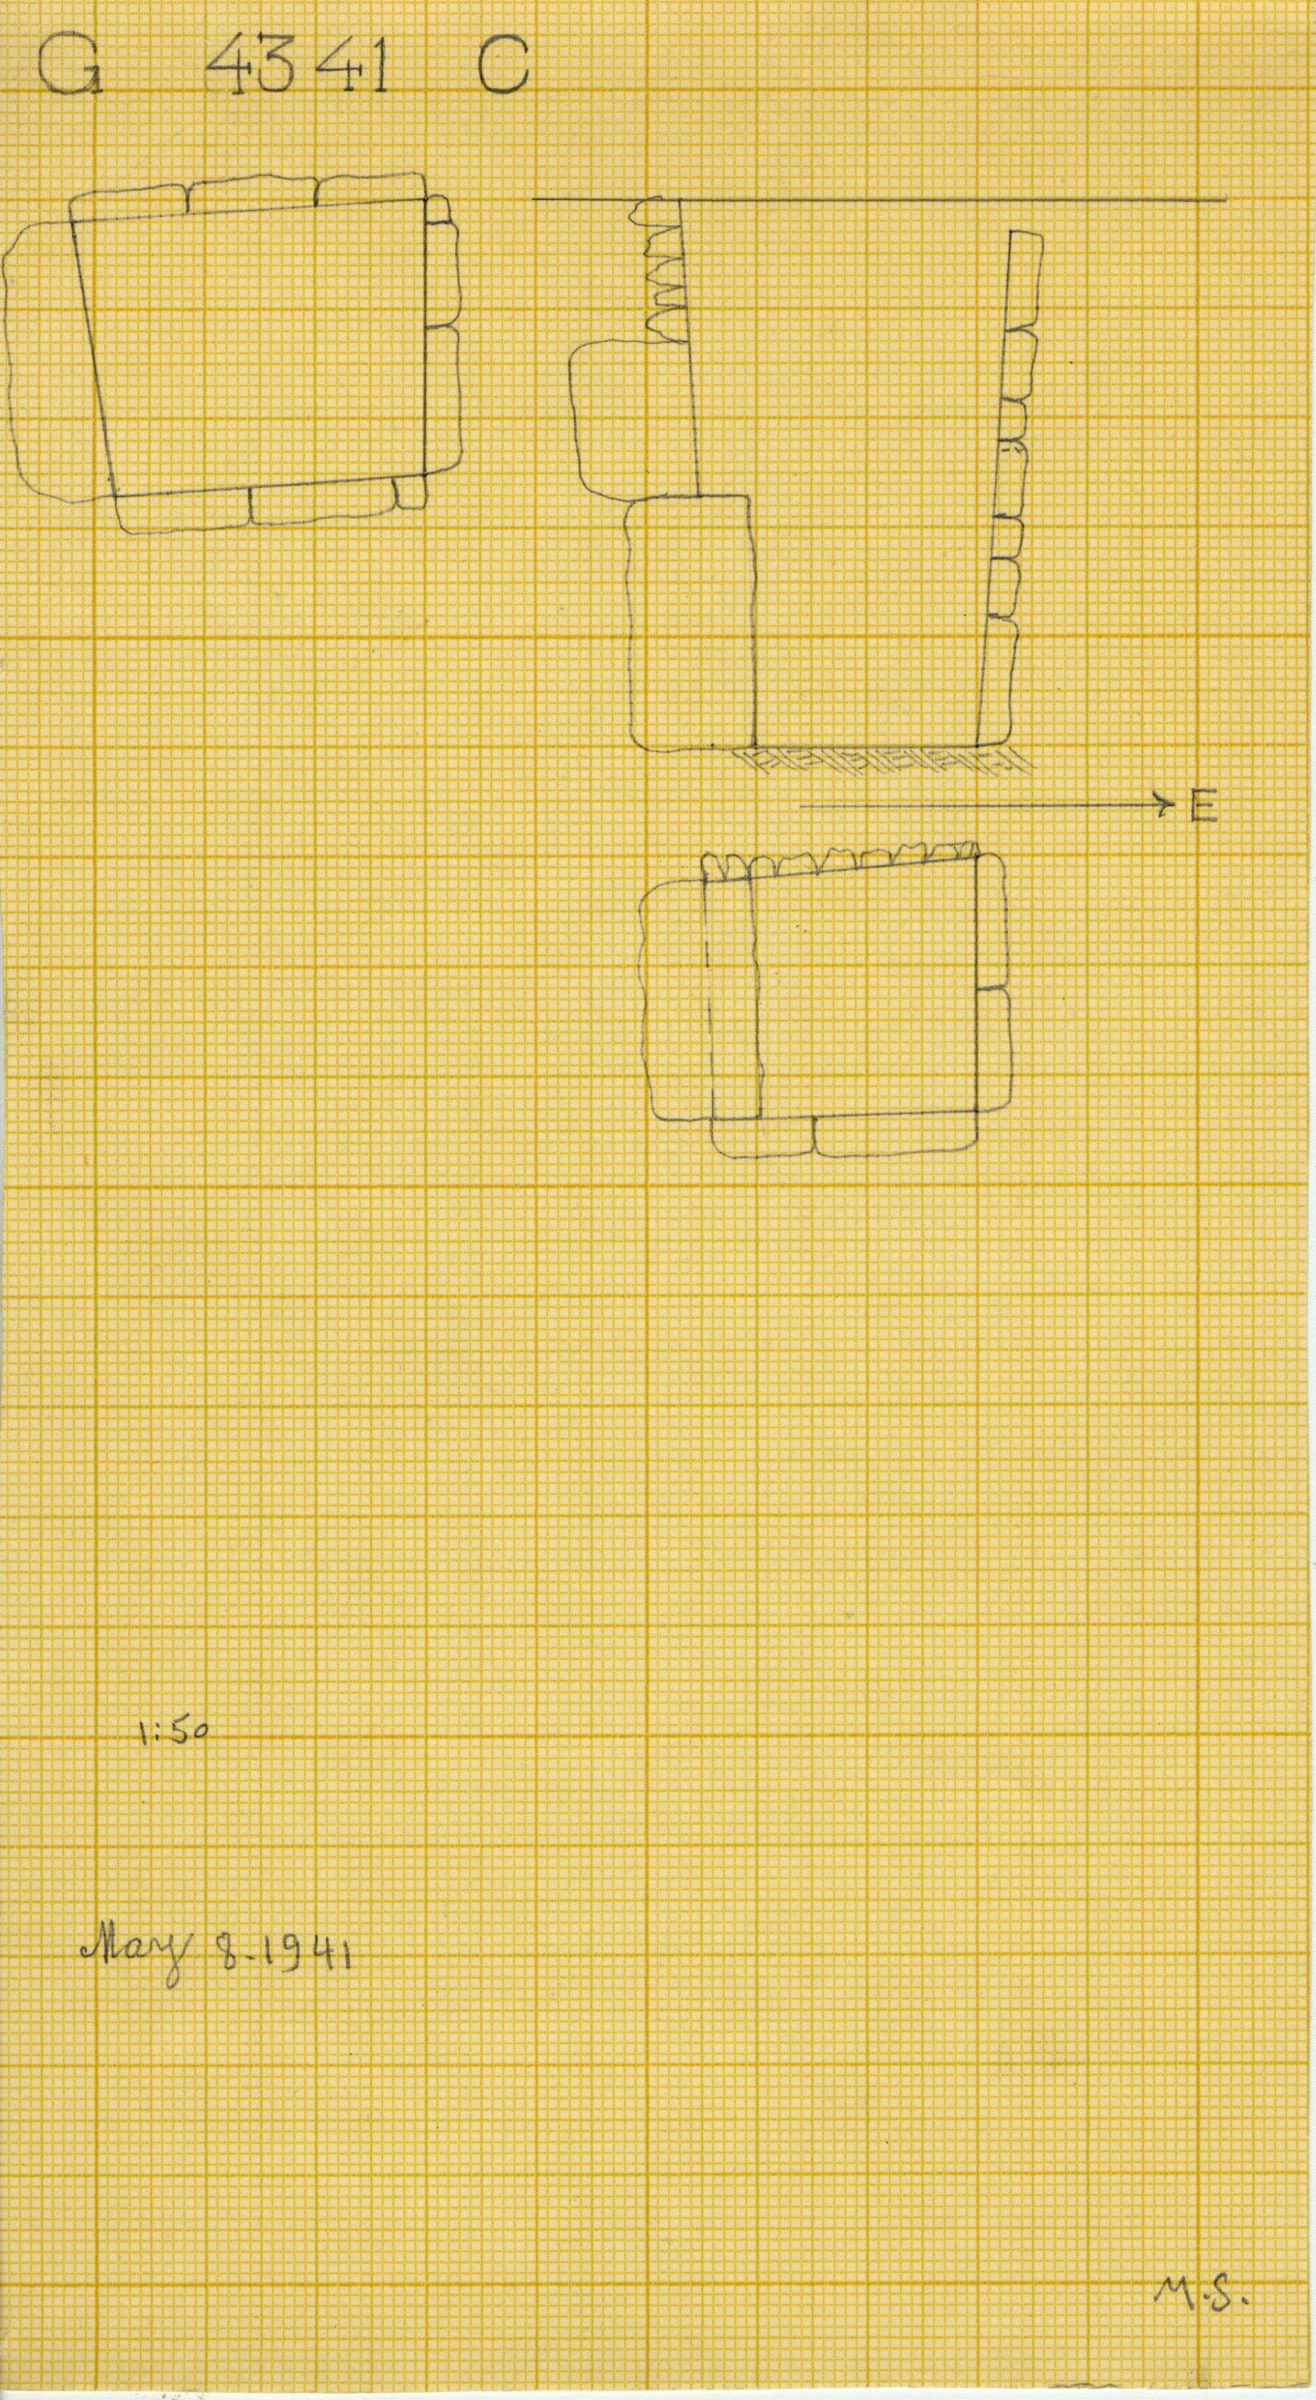 Maps and plans: G 4341, Shaft C